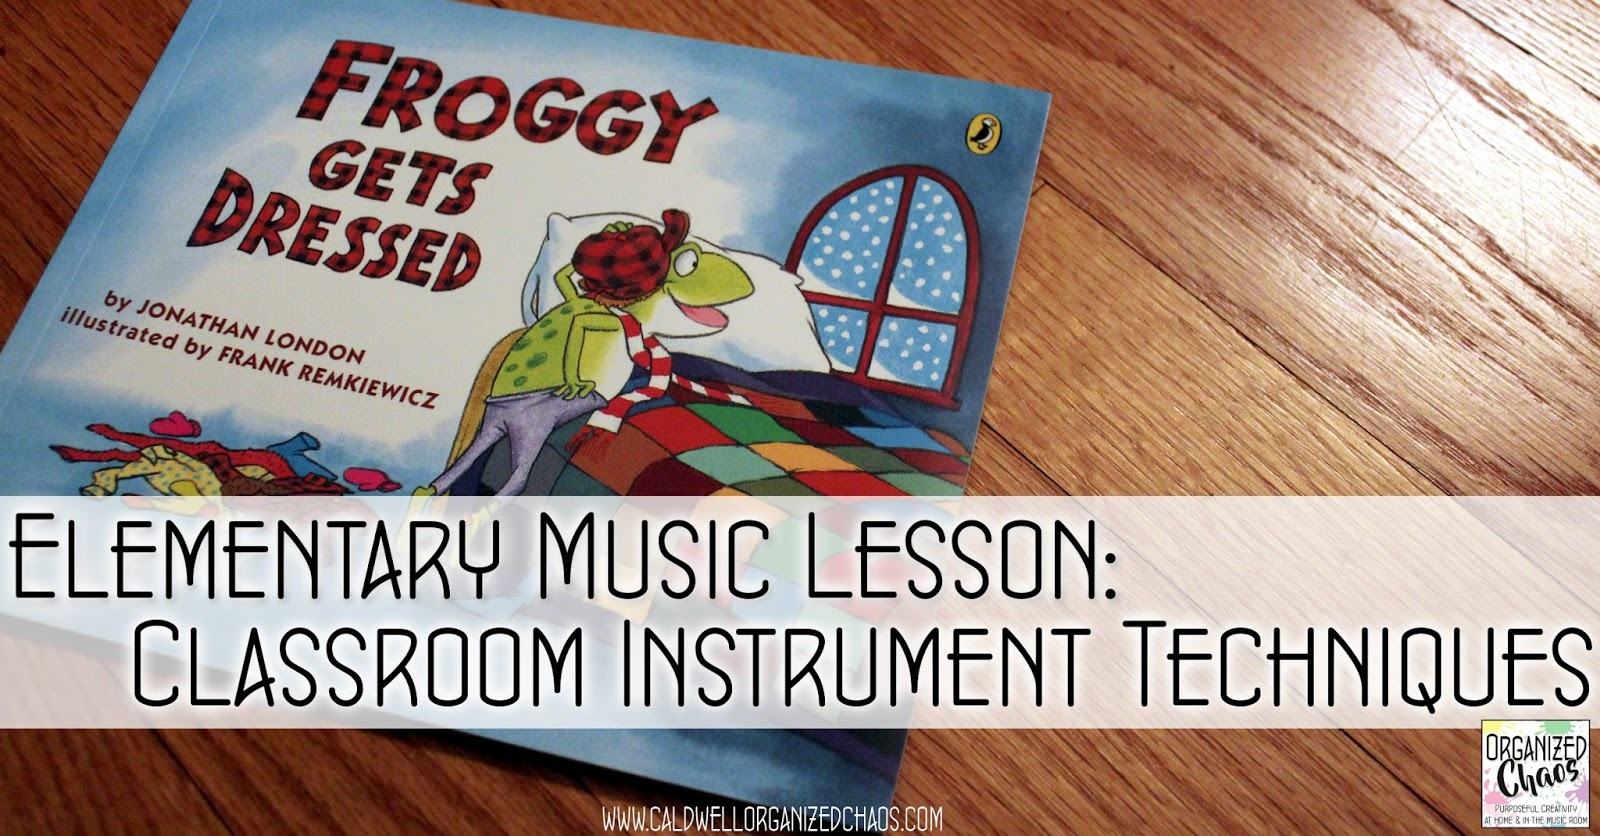 I Am Using This Lesson With Kindergarten To Review Proper Playing Technique On Our Classroom Instruments Could Also Be Used Introduce And